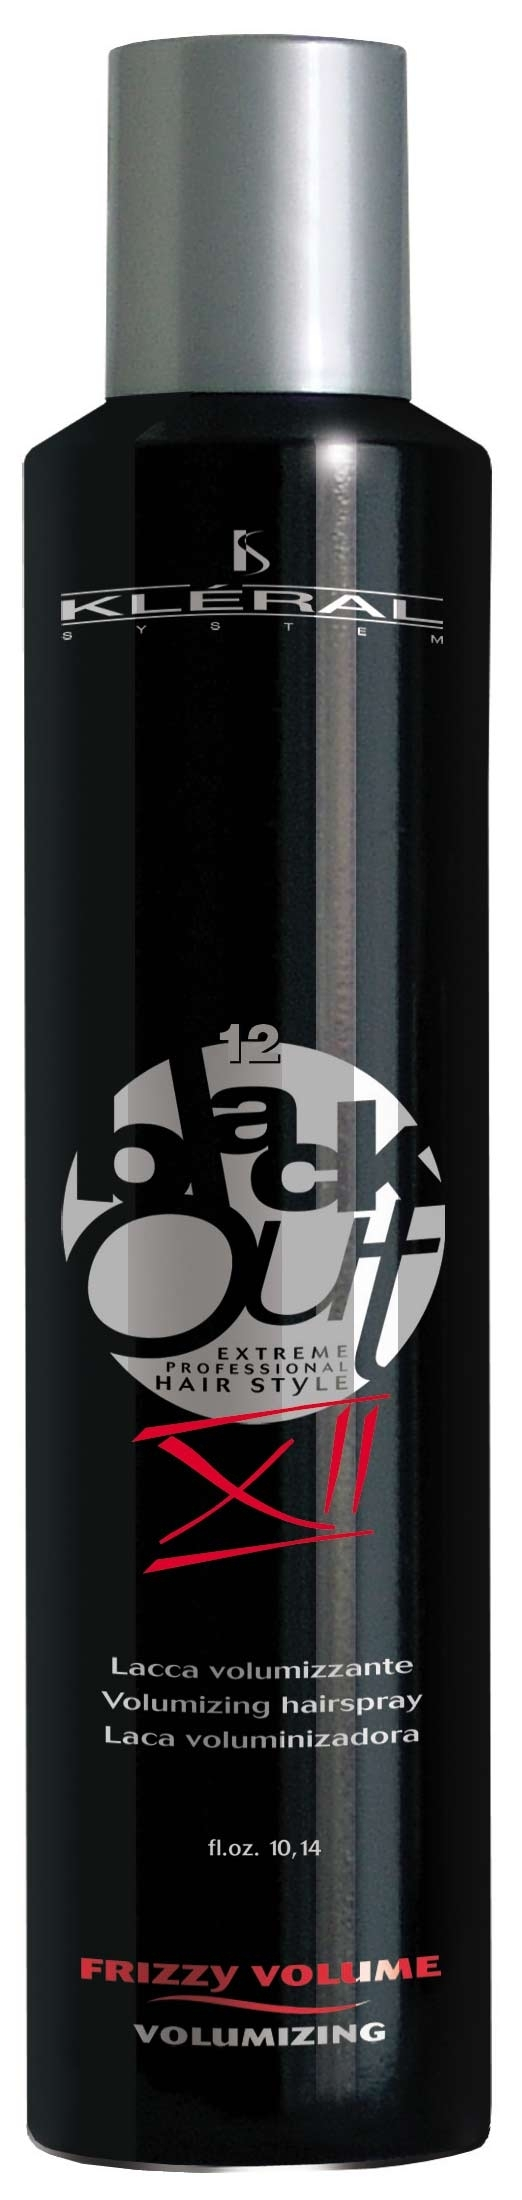 Kléral Black Out FRIZZY VOLUME - volumizing XII 300 ml - lak na vlasy